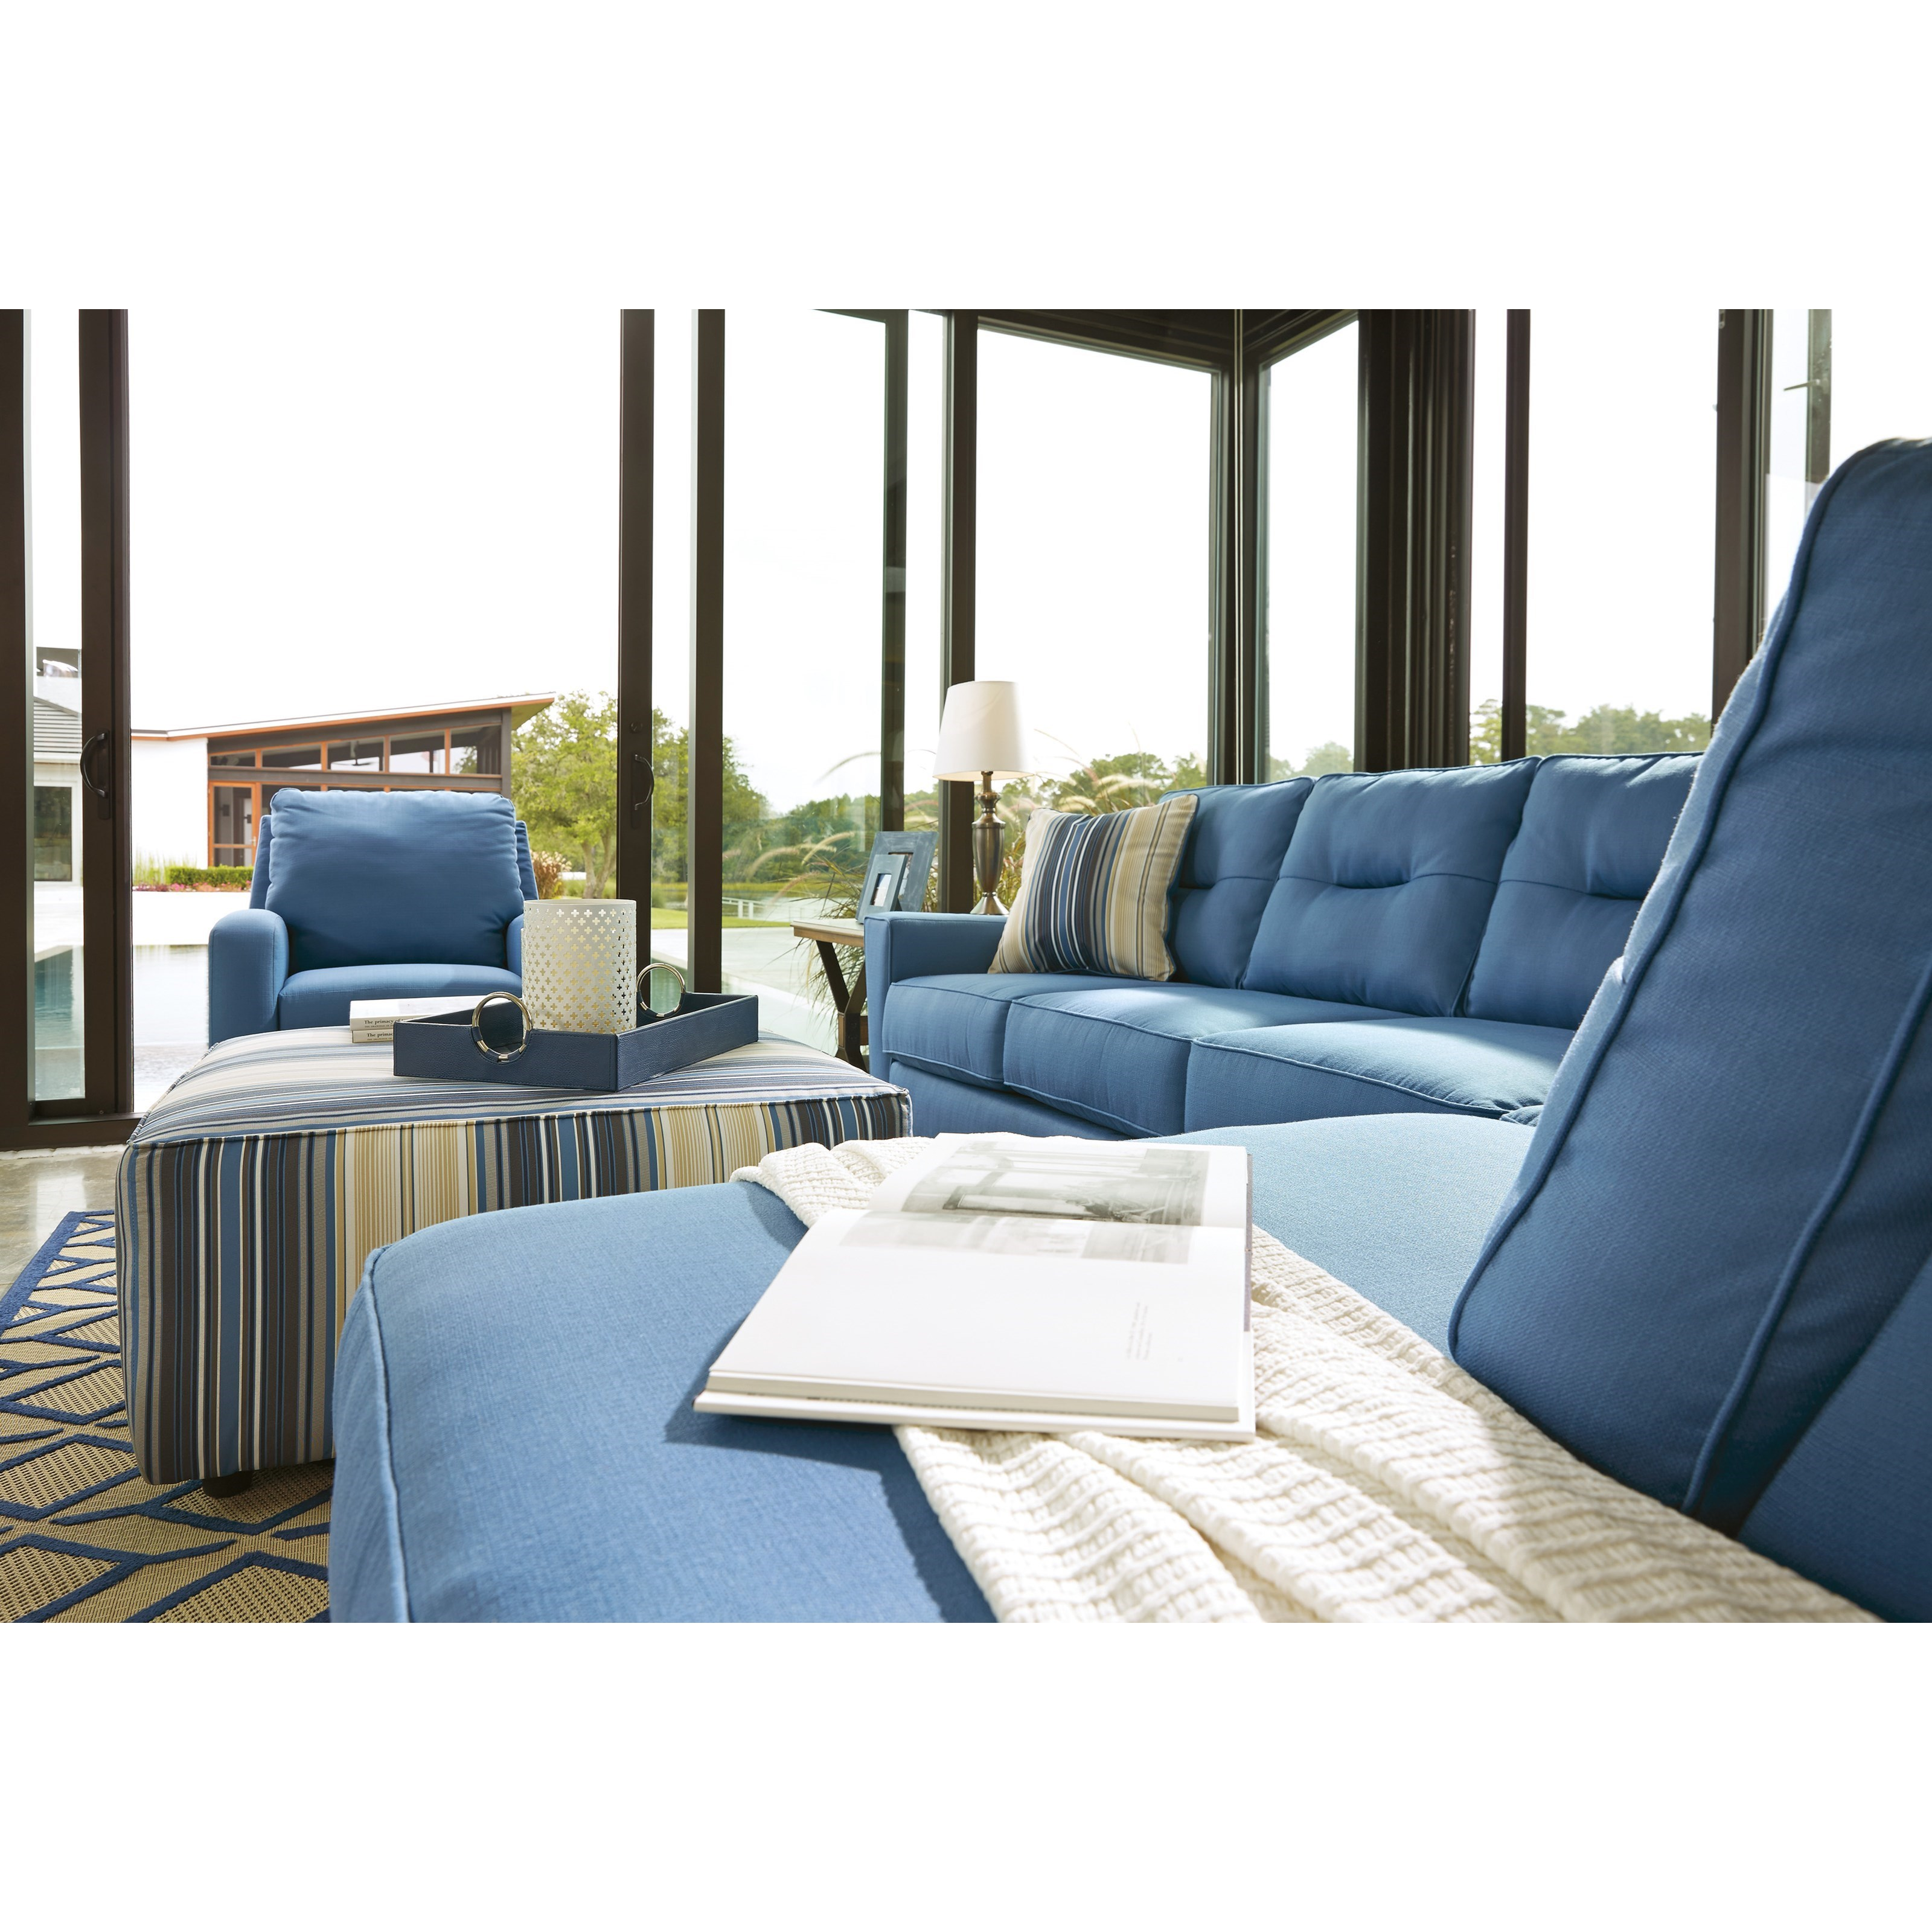 Benchcraft Kirwin Nuvella Sectional With Right Chaise In